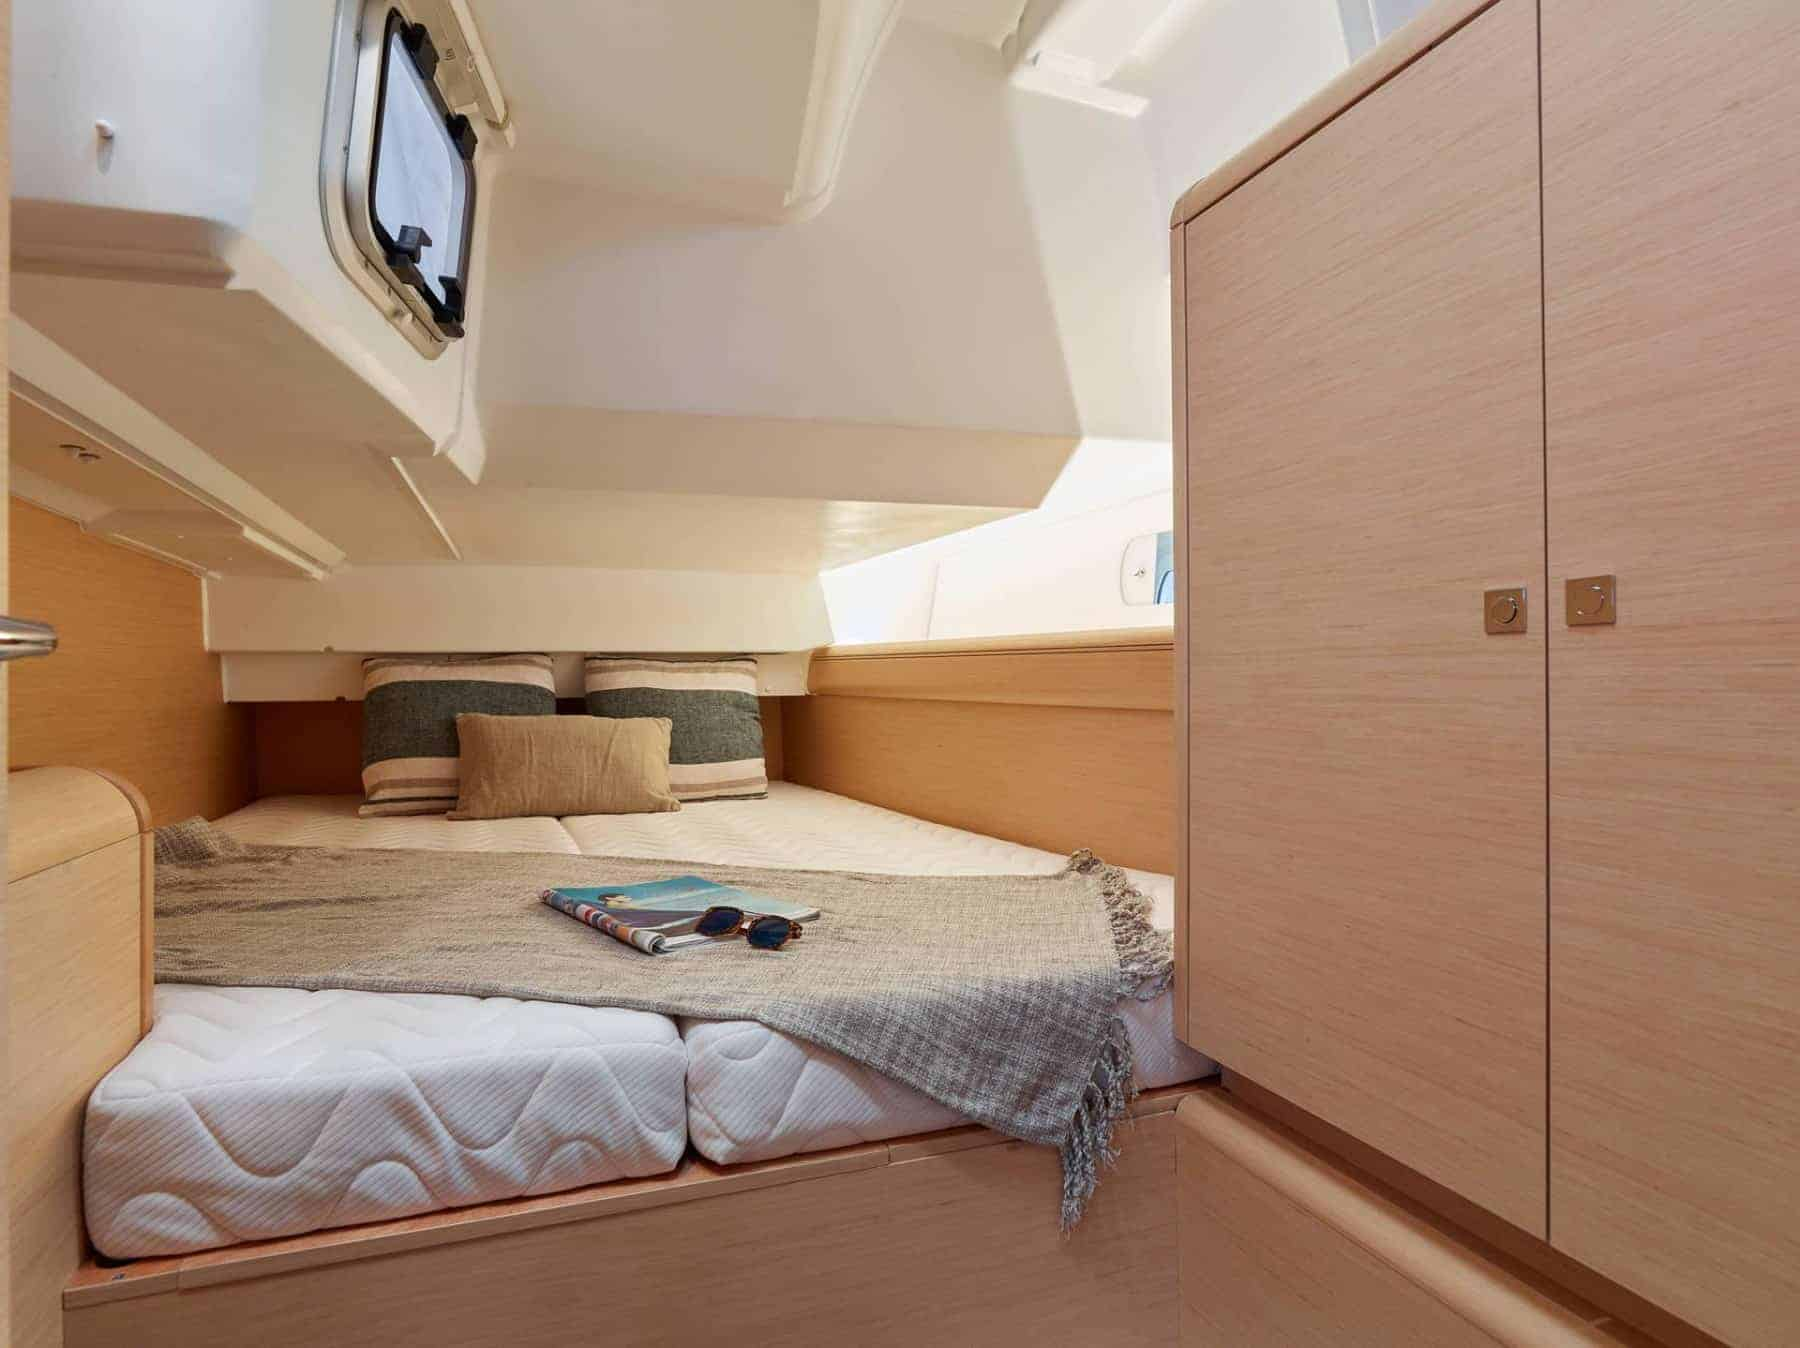 Cabin with a bed in a mono hull yacht